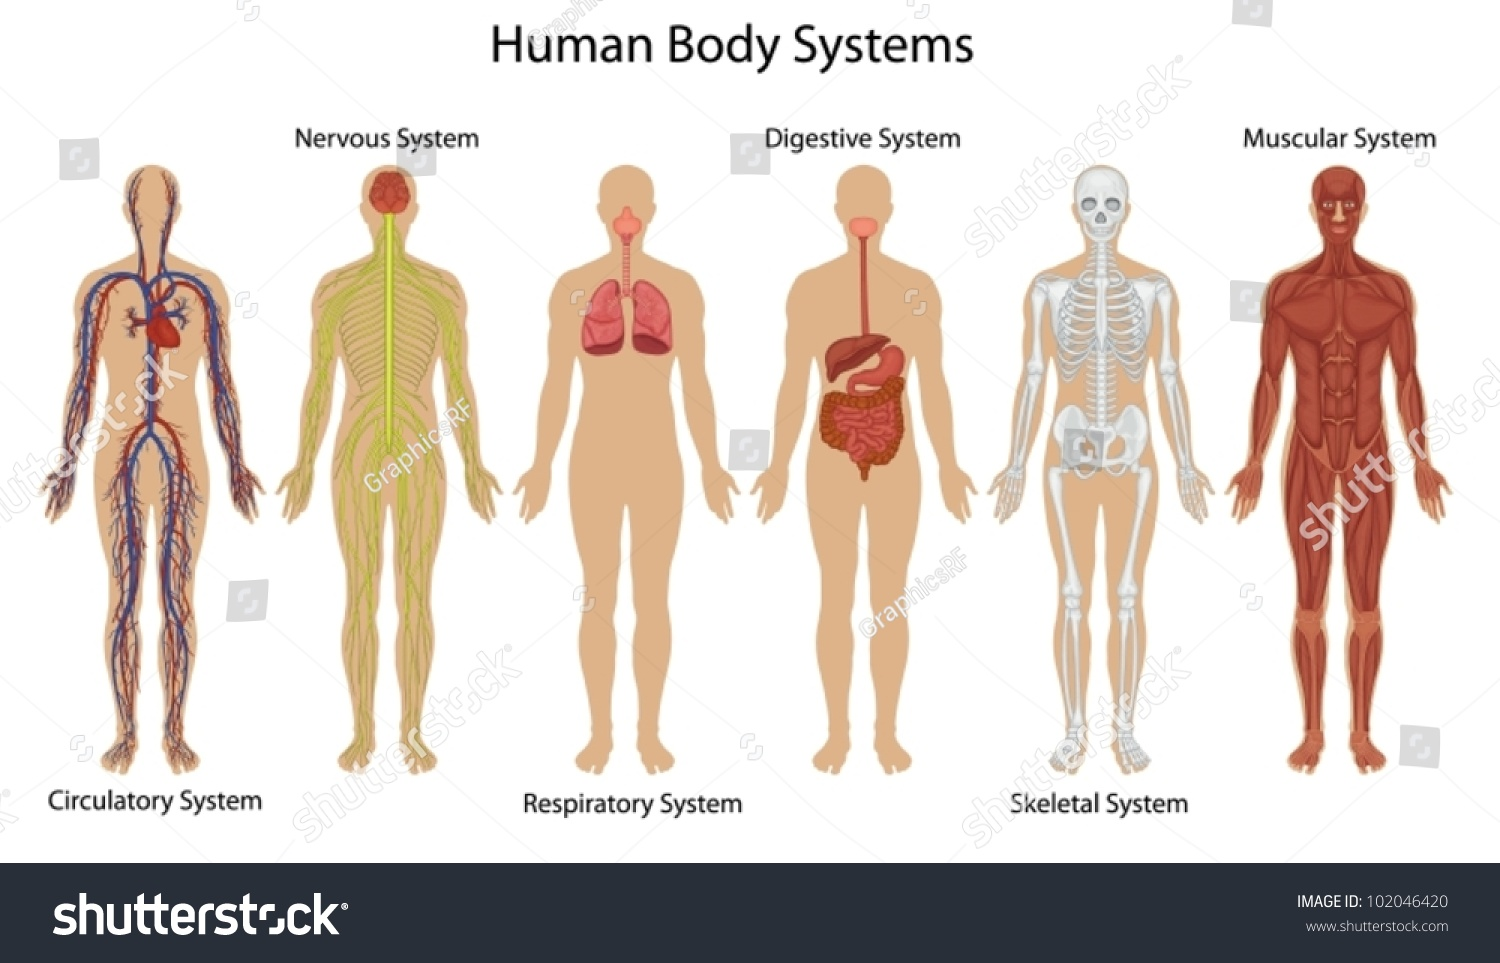 hight resolution of illustration of the human body systems